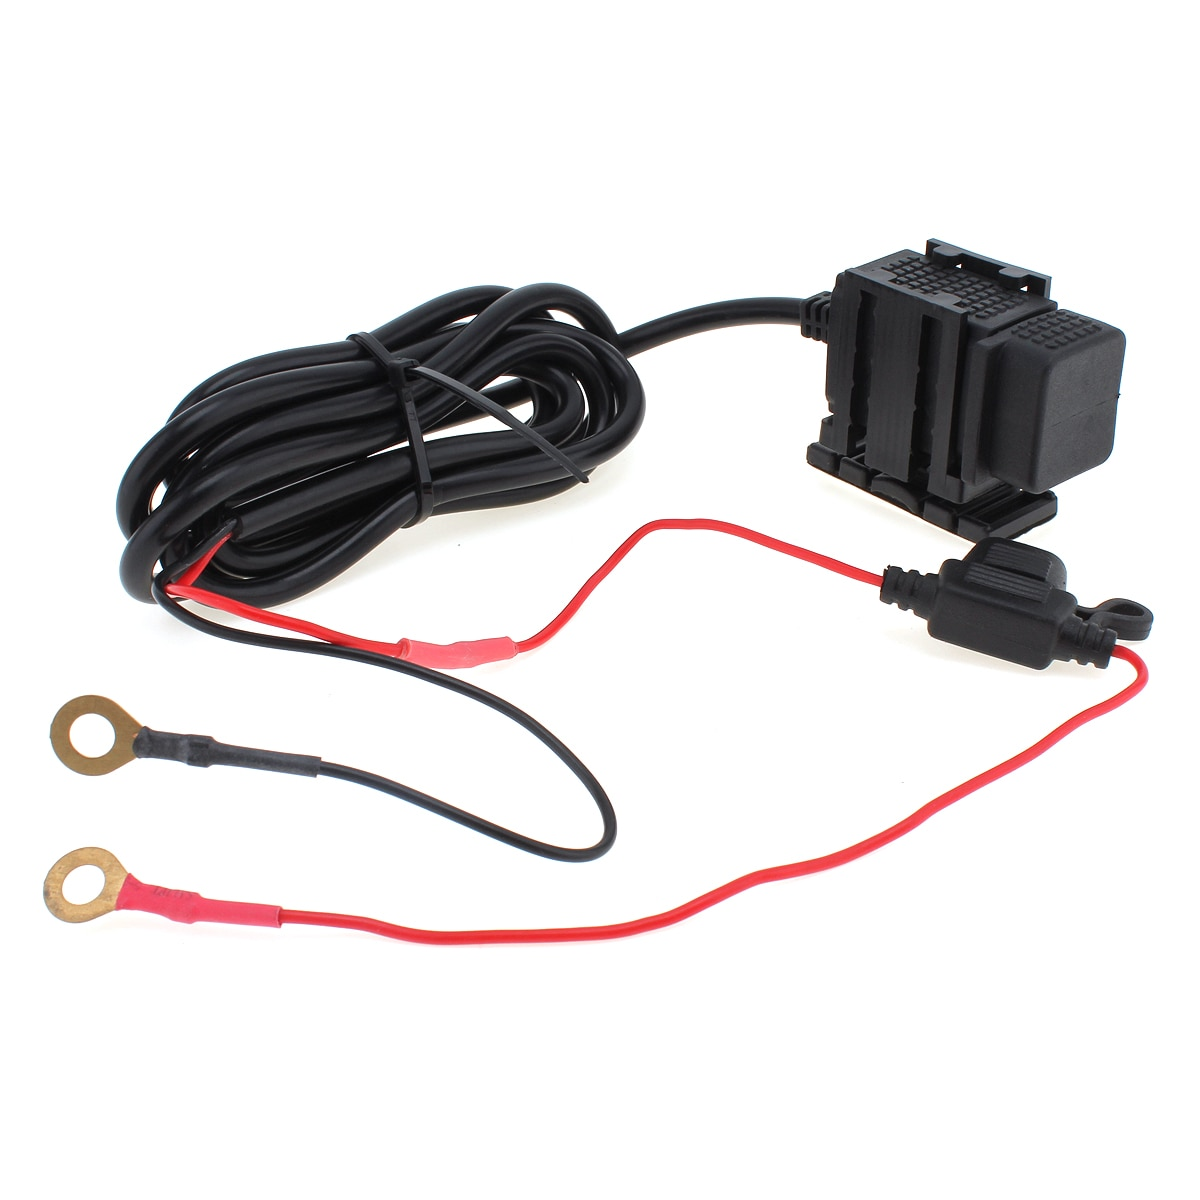 Dual USB 12V Durable Black Waterproof Motorcycle Handlebar Power Charger Supply Port Socket Suitable for Phone / GPS / MP4